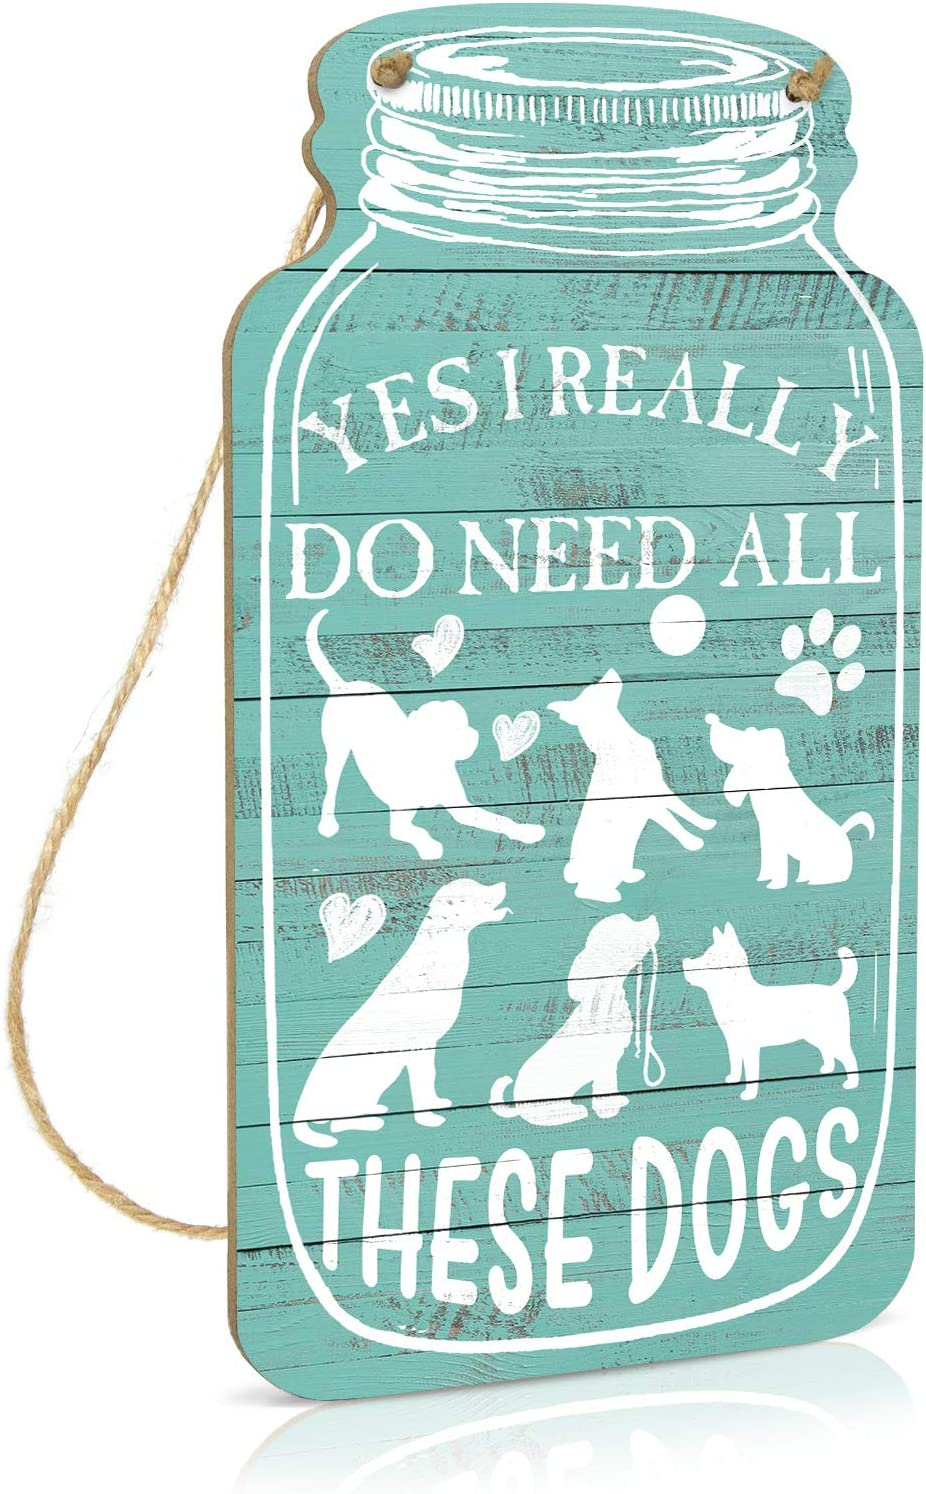 Putuo Decor Dog Wall Decor, Funny Pet Sign for Home, Living Room, Bedroom, 8.3x4.5 Inches Mason Jar Wood Hanging Plaque Sign, Gift for Dog Lover - Yes I Do Really Need All These Dogs